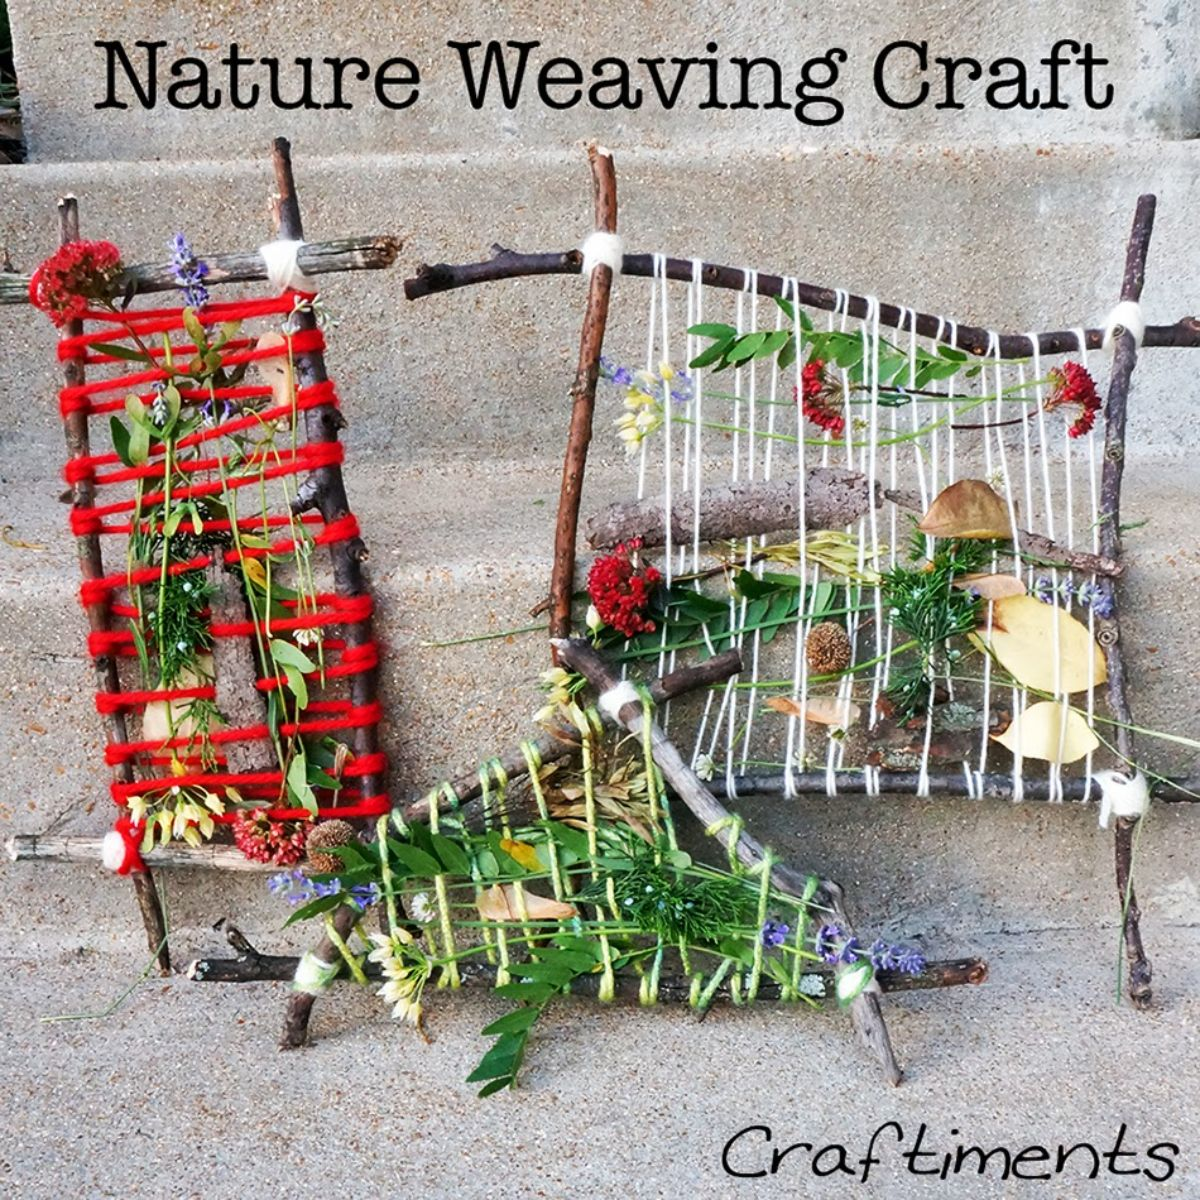 """The text reads """"Nature Weaving Craft"""" the image is of 3 hazel frames with string and leaves weaved into them"""